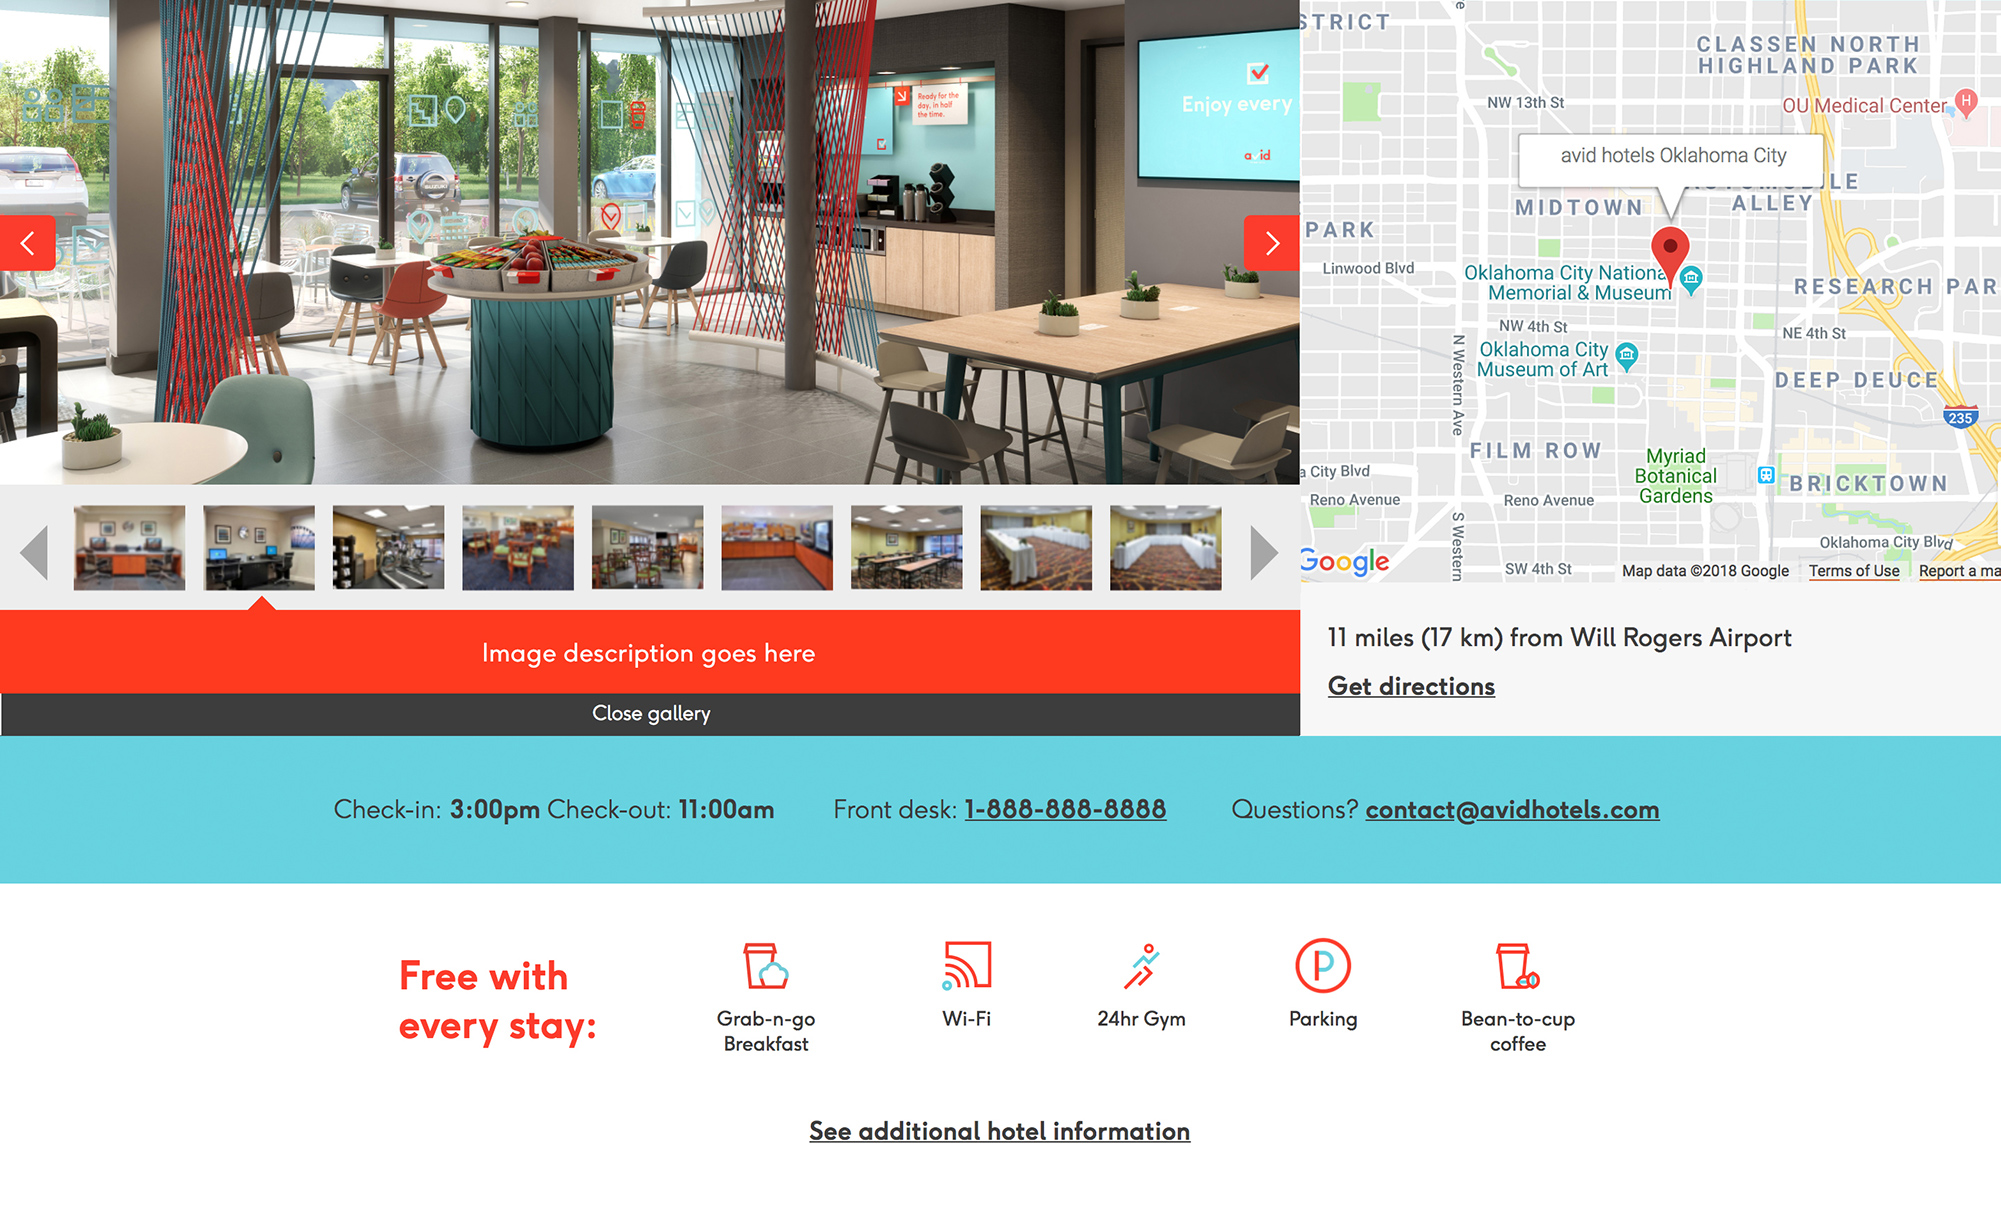 A screenshot of the hotel details page, on which is an image gallery for the hotel and other relevant hotel information. The page features rich red colors as well as a light blue.